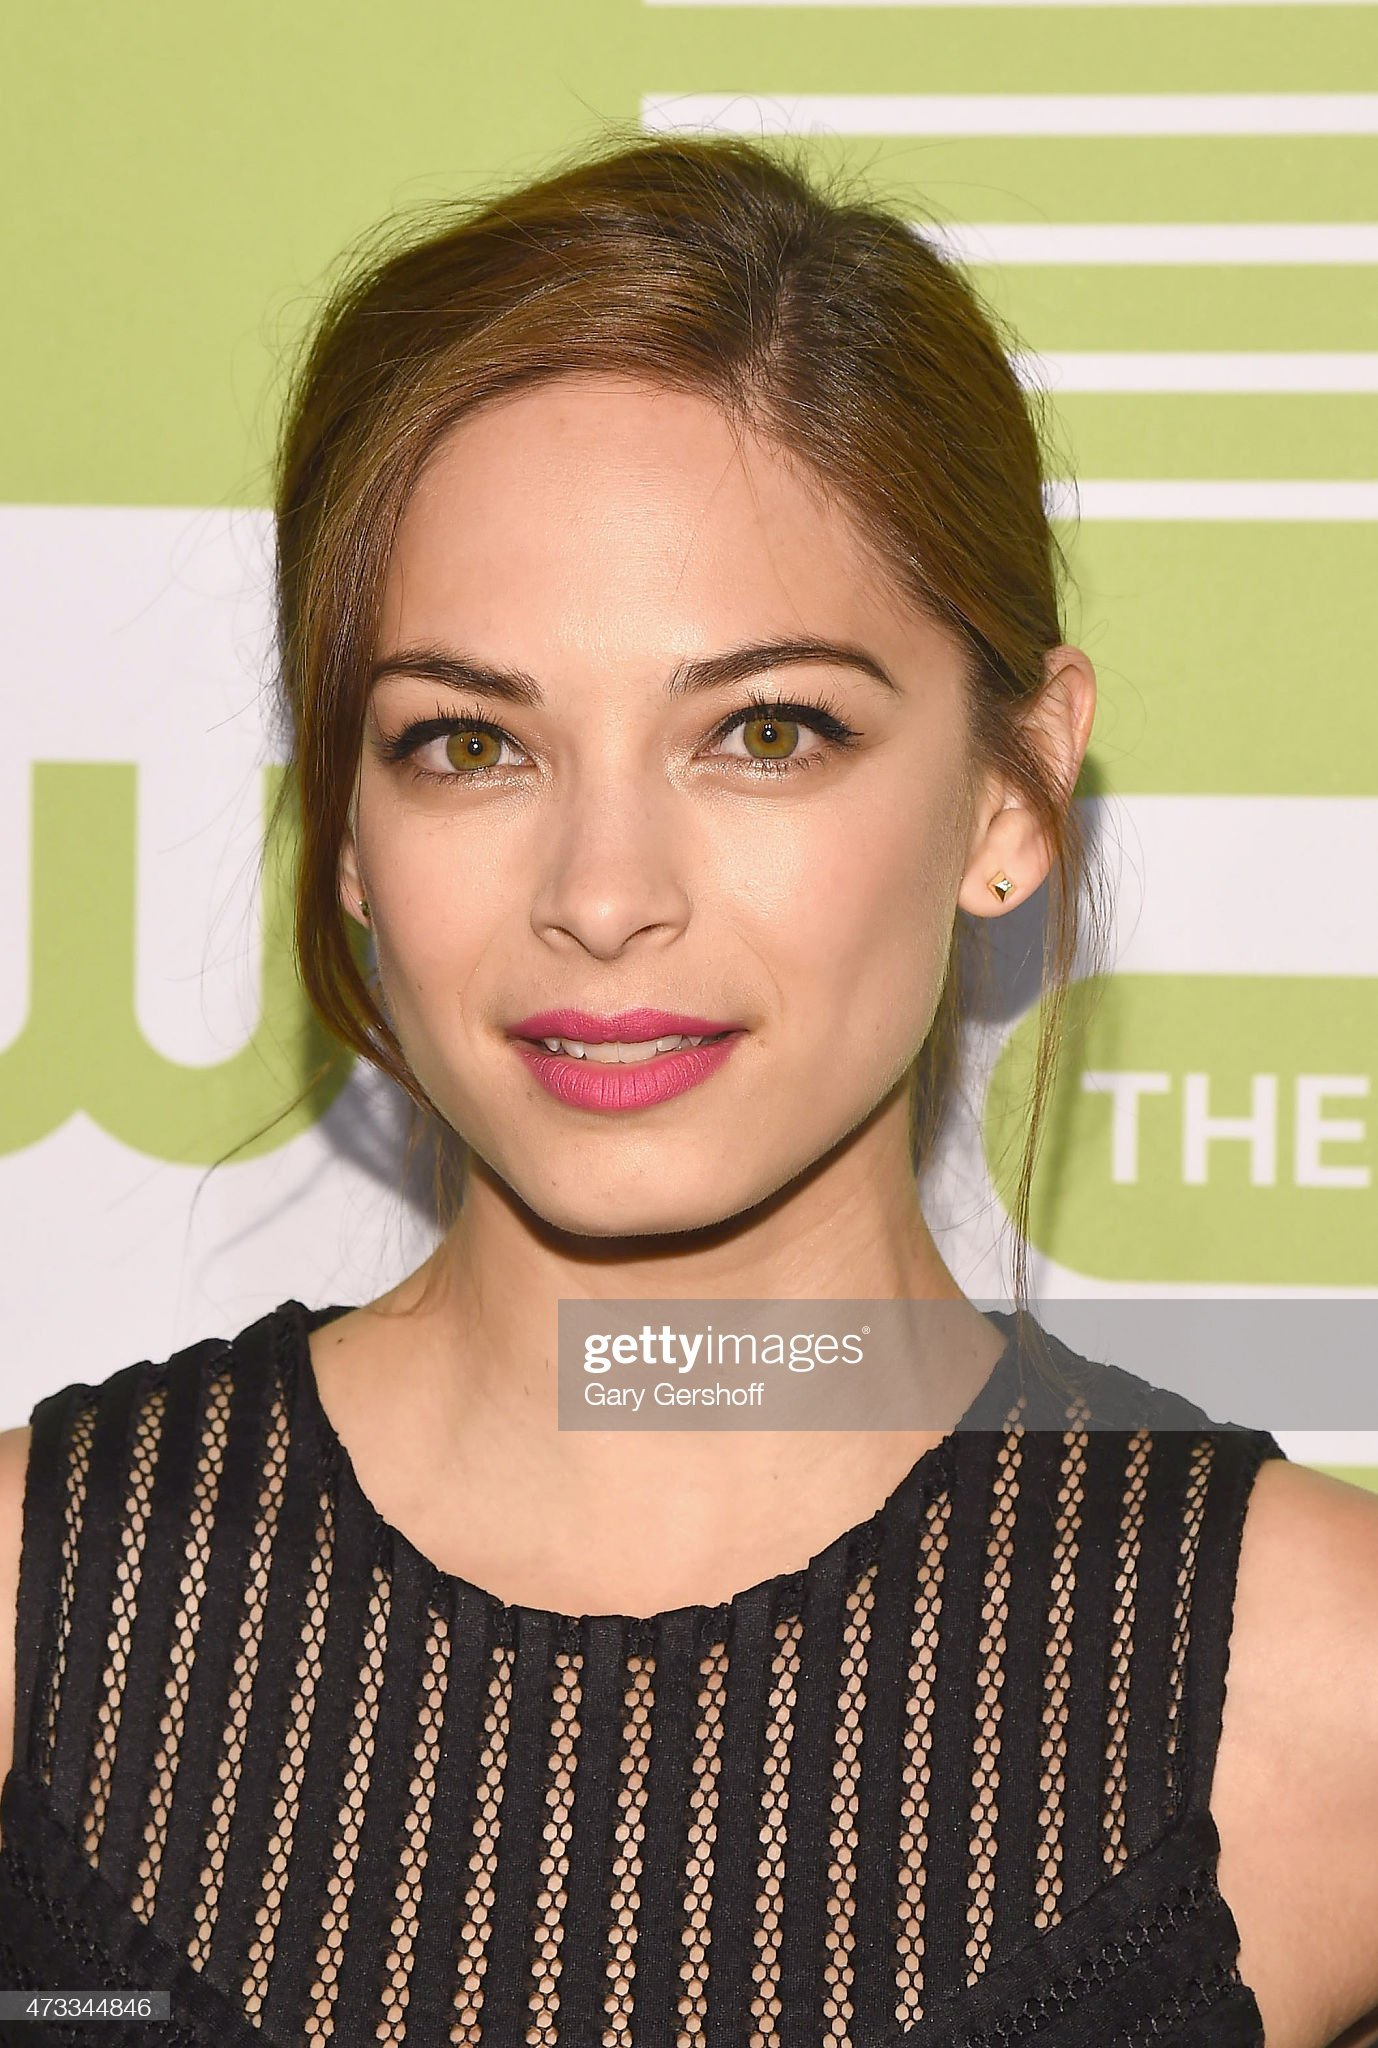 COLOR DE OJOS (clasificación y debate de personas famosas) Kristin-kreuk-attends-the-cw-networks-new-york-2015-upfront-at-the-picture-id473344846?s=2048x2048